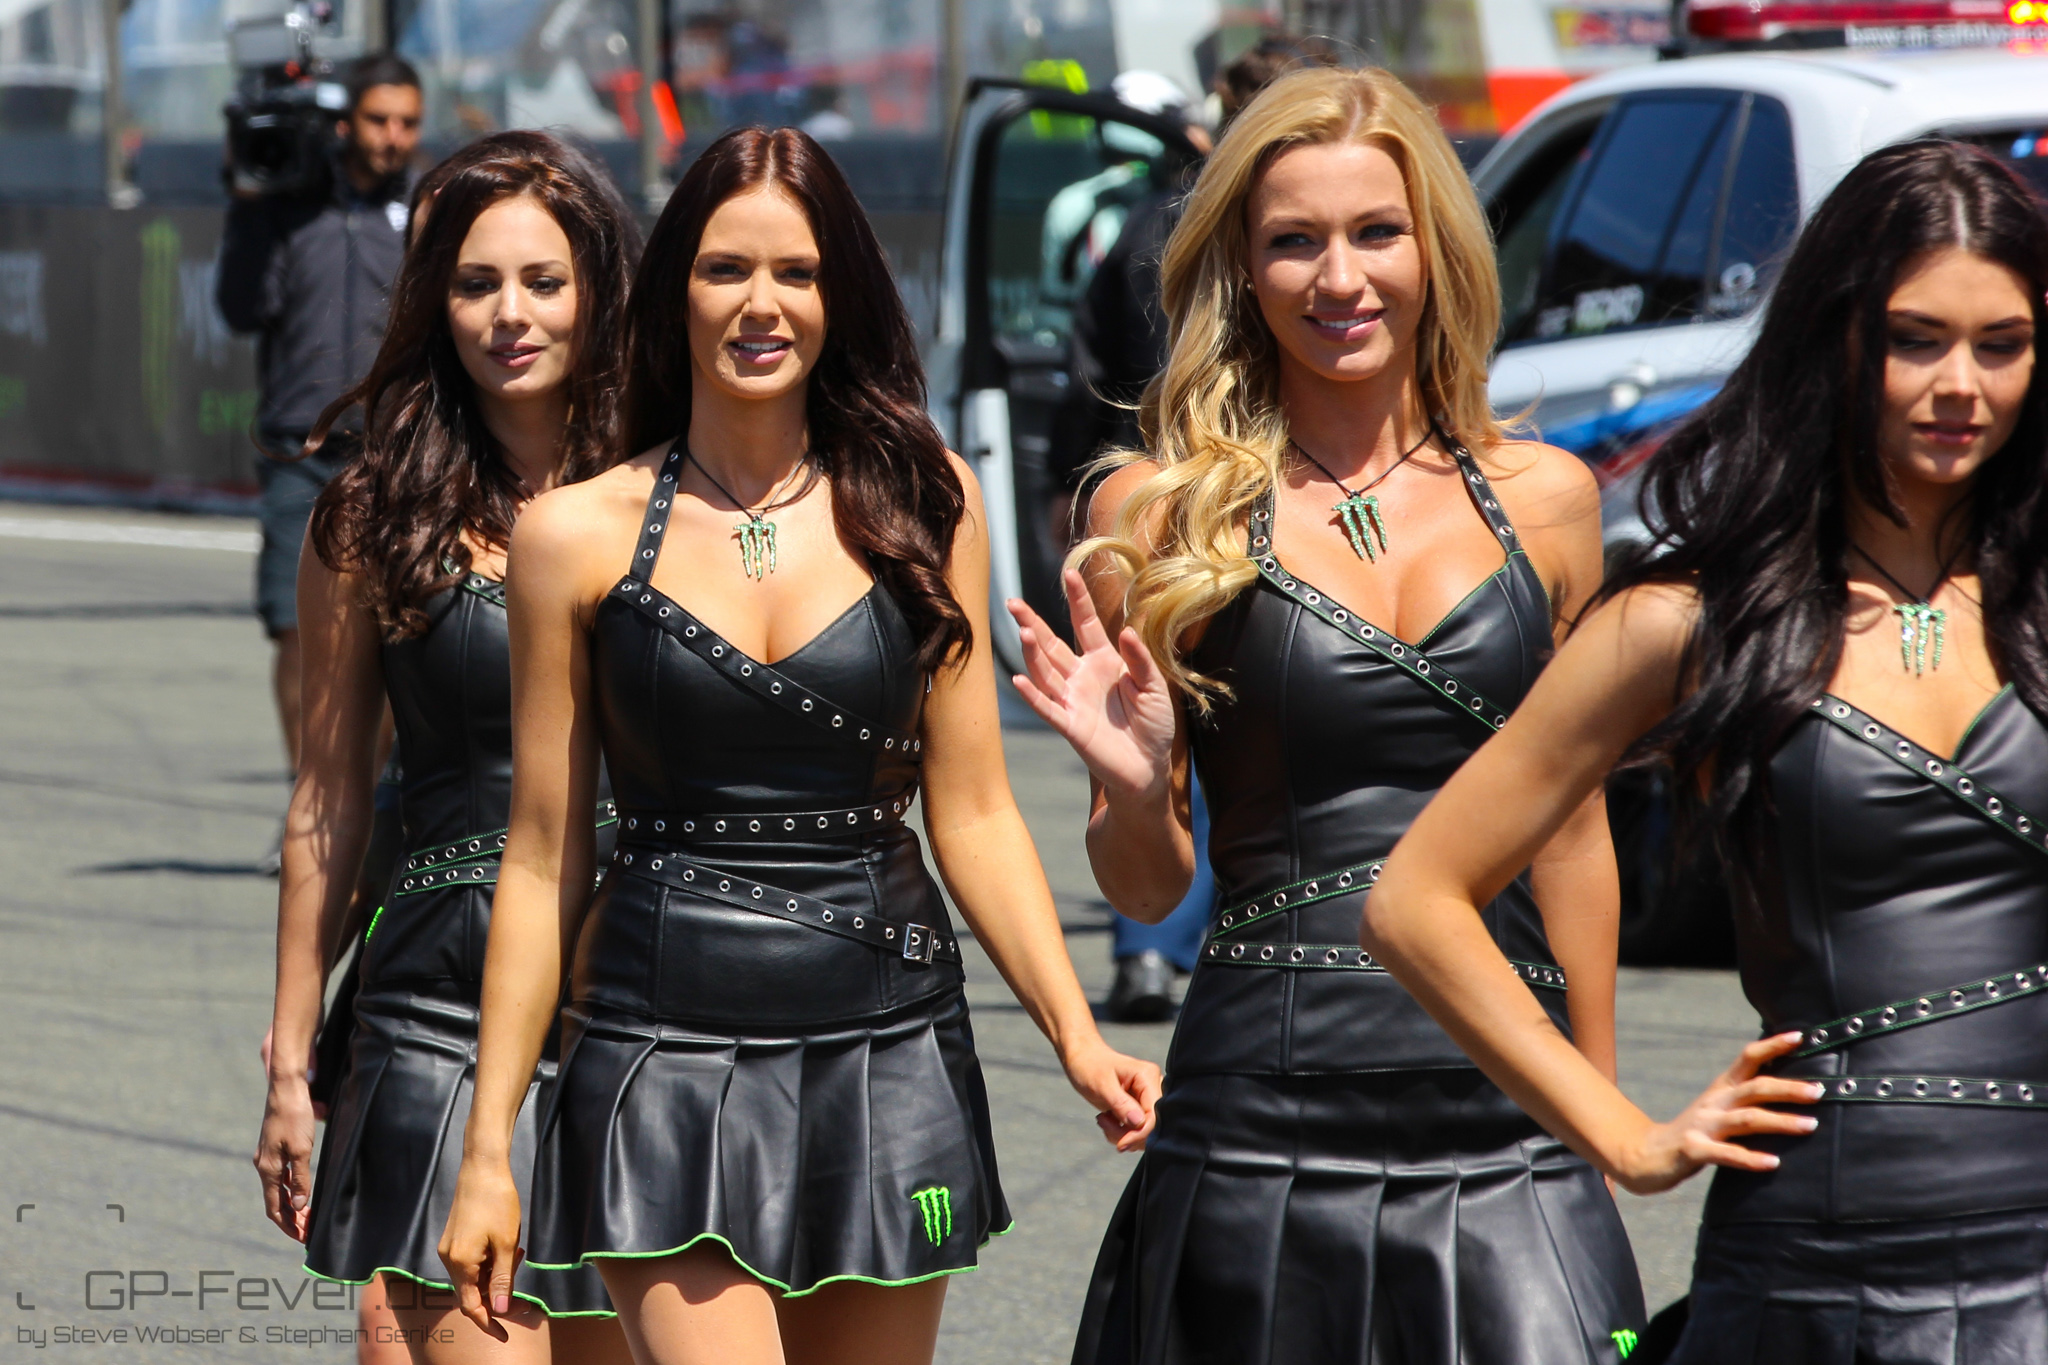 GP fever Monstergirls Monster Girls Le Mans LeMans MotoGP